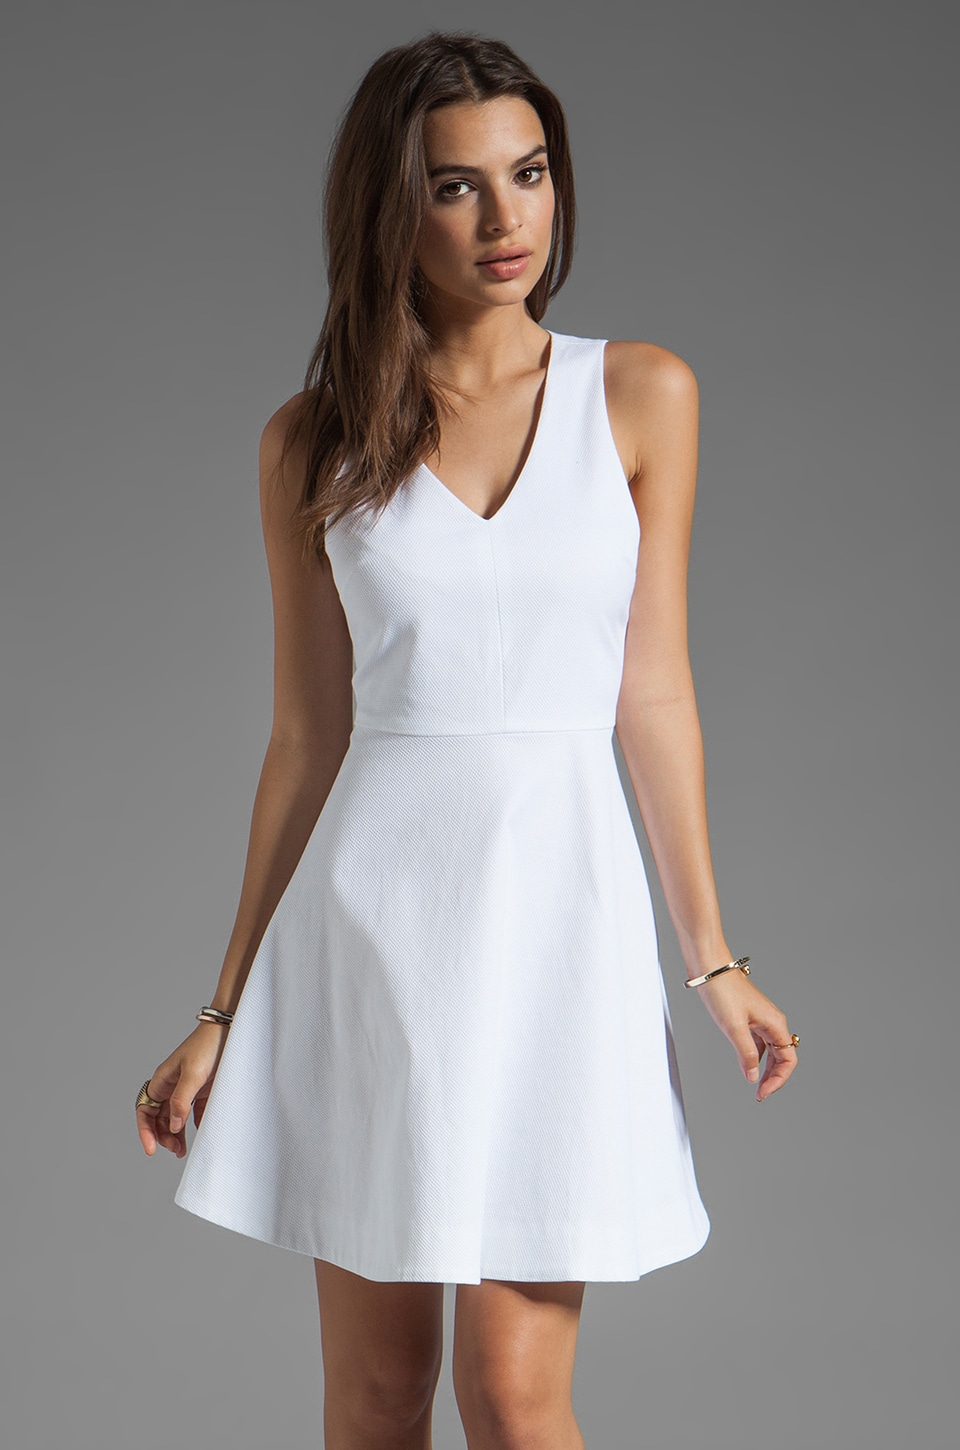 Joie Norton Dress in Porcelain